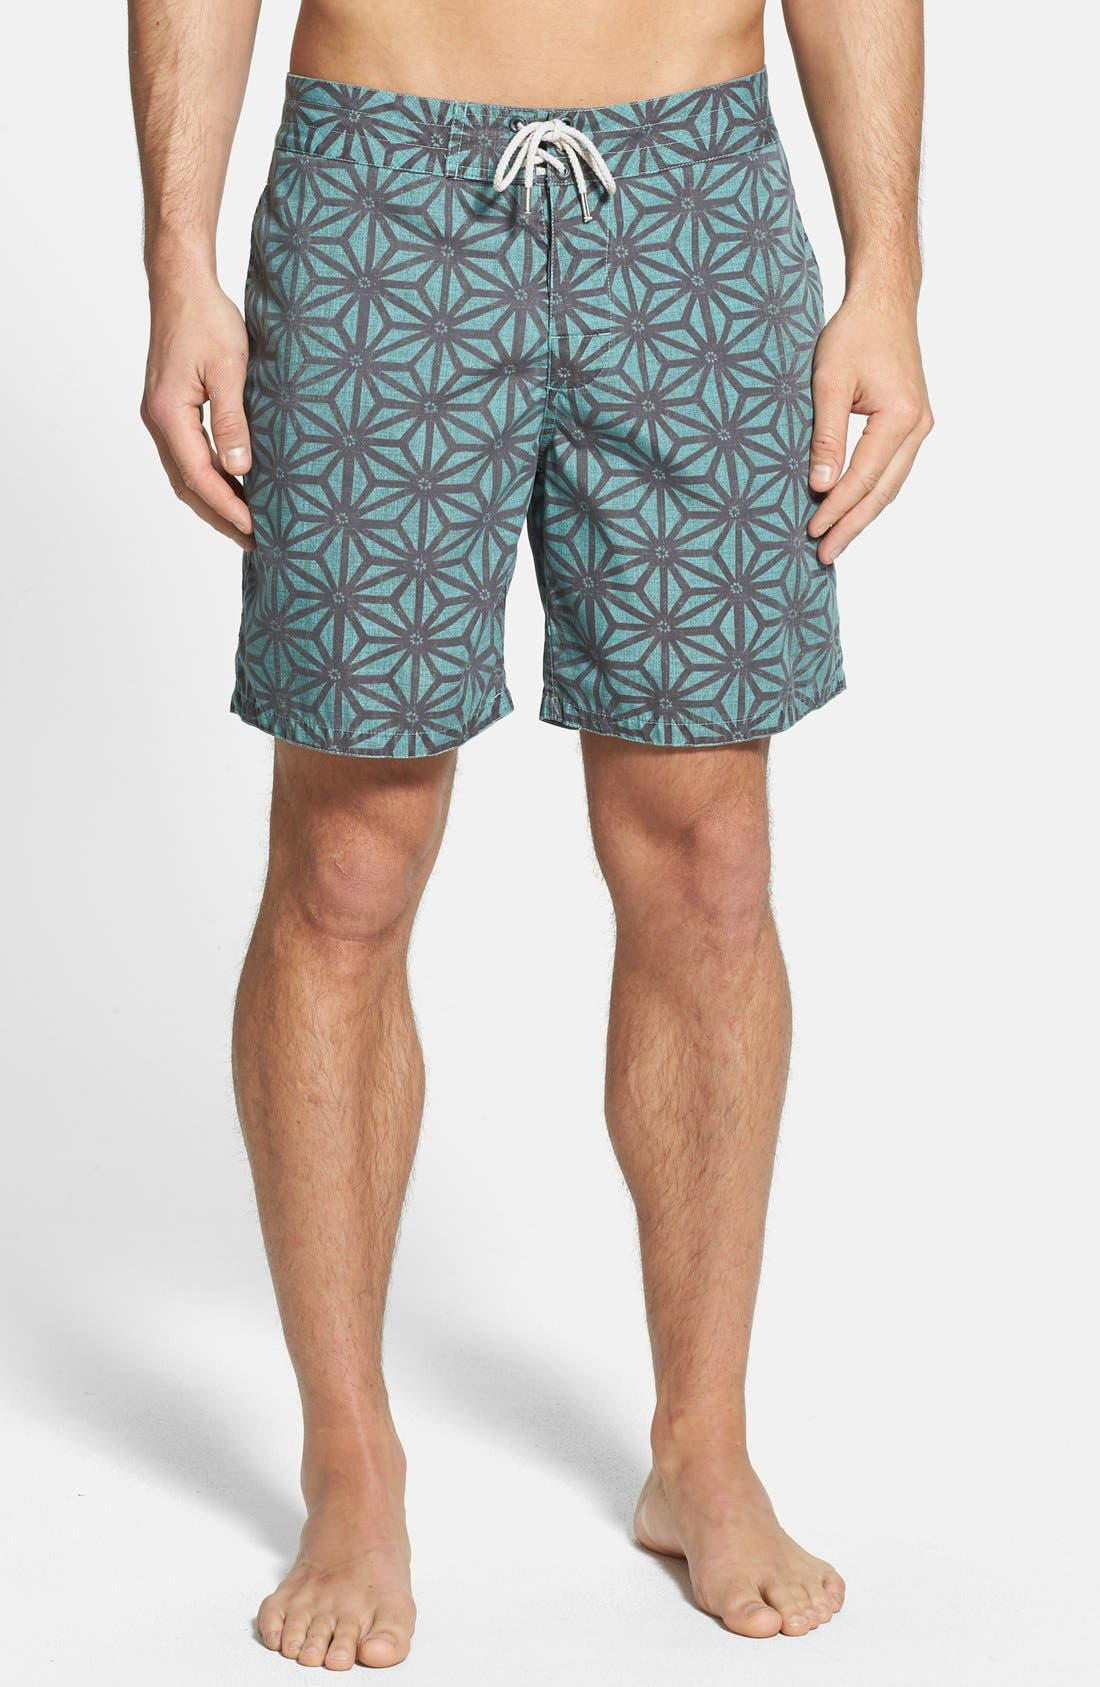 Alternate Image 1 Selected - Faherty 'Classic' Print Board Shorts